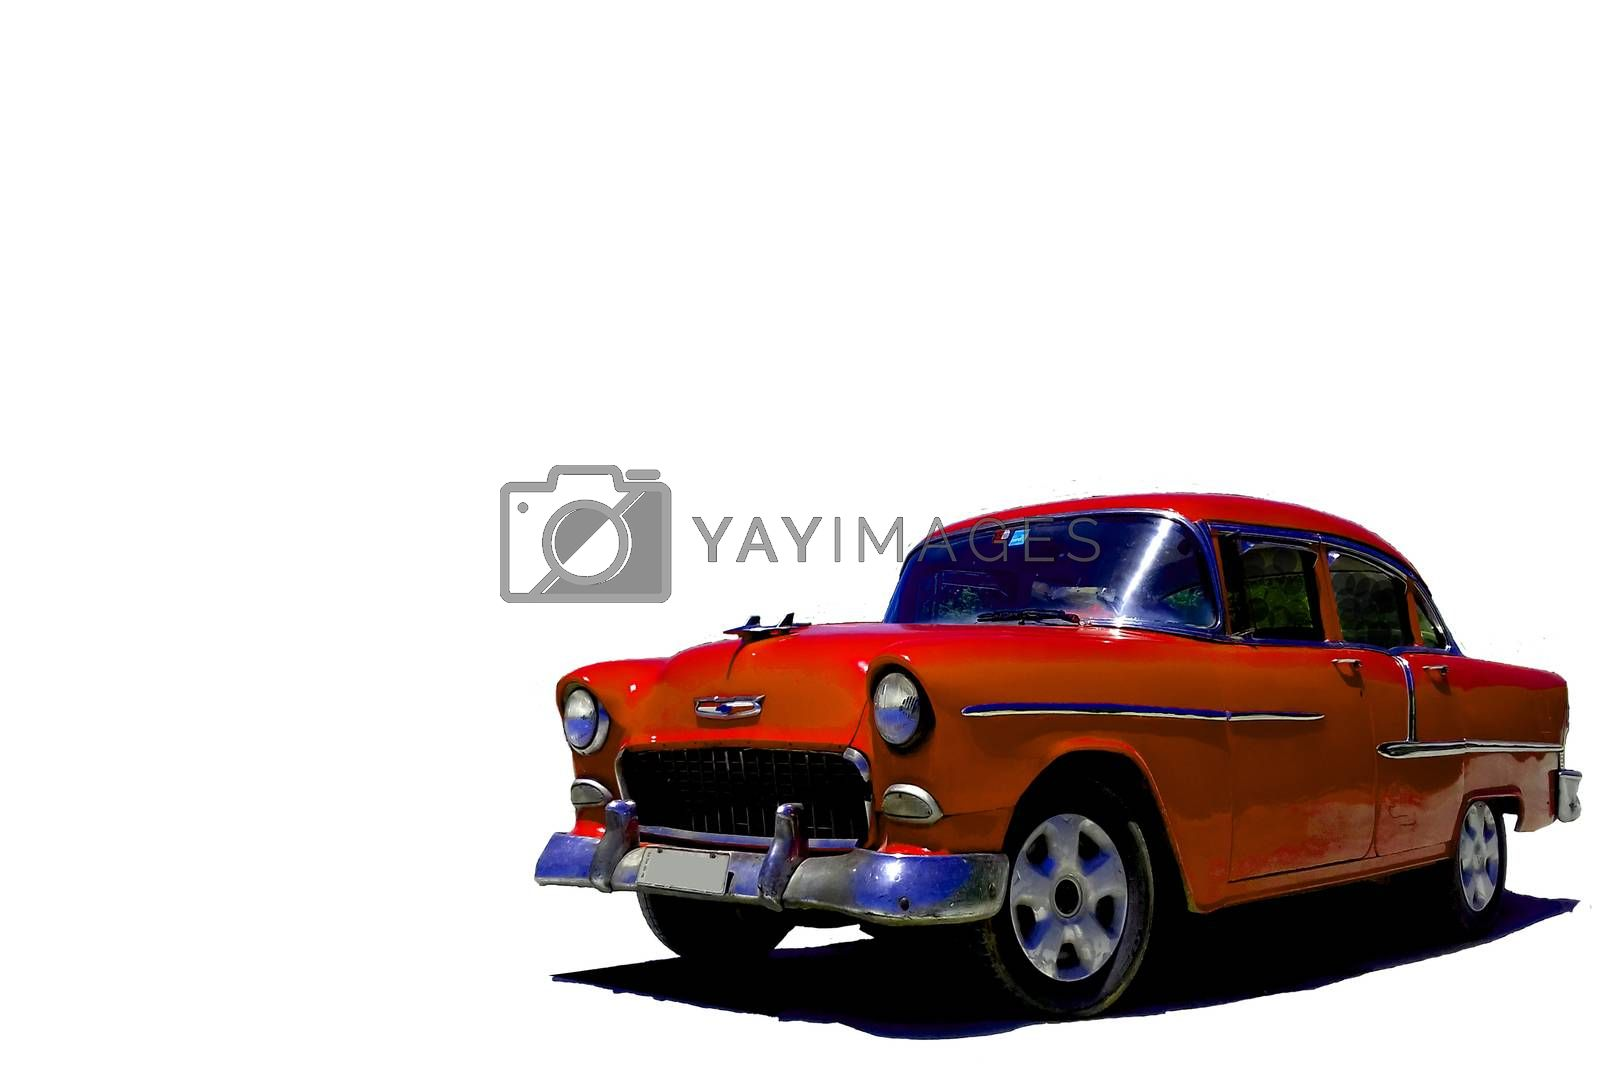 Red vintage American car on isolated white background by mdsfotograf